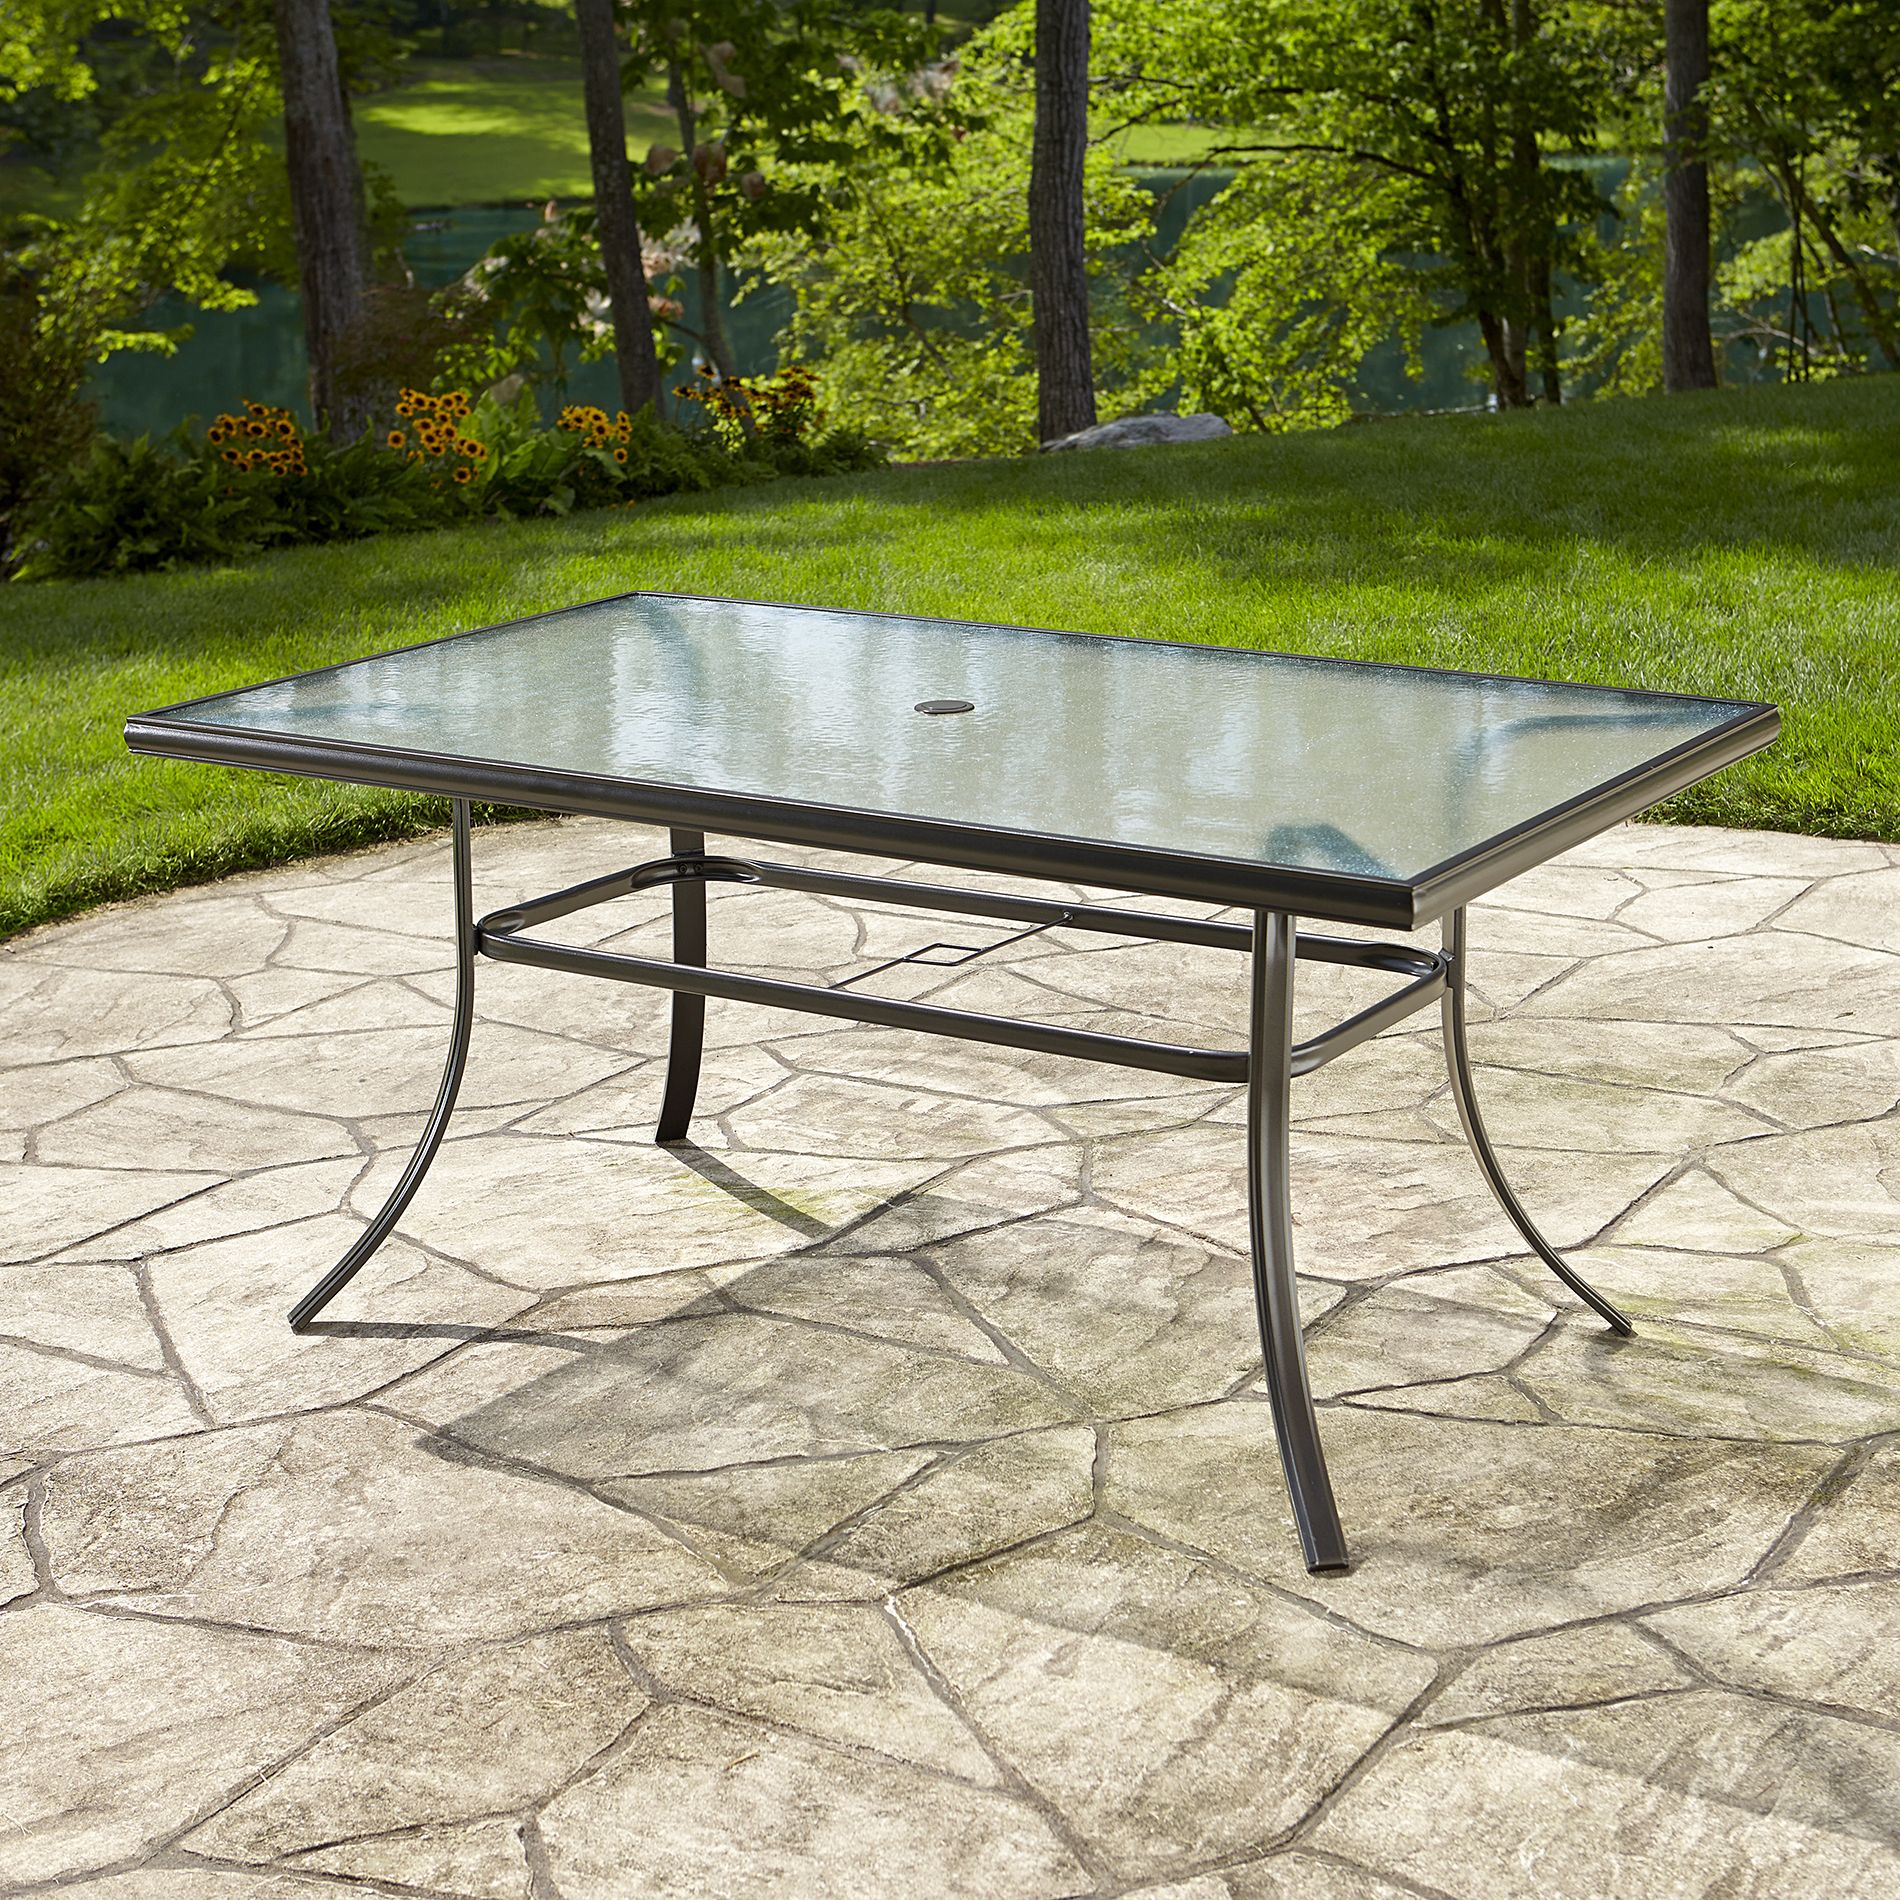 Essential Garden Fulton Dining Table Kmart Bought 2 In 2017